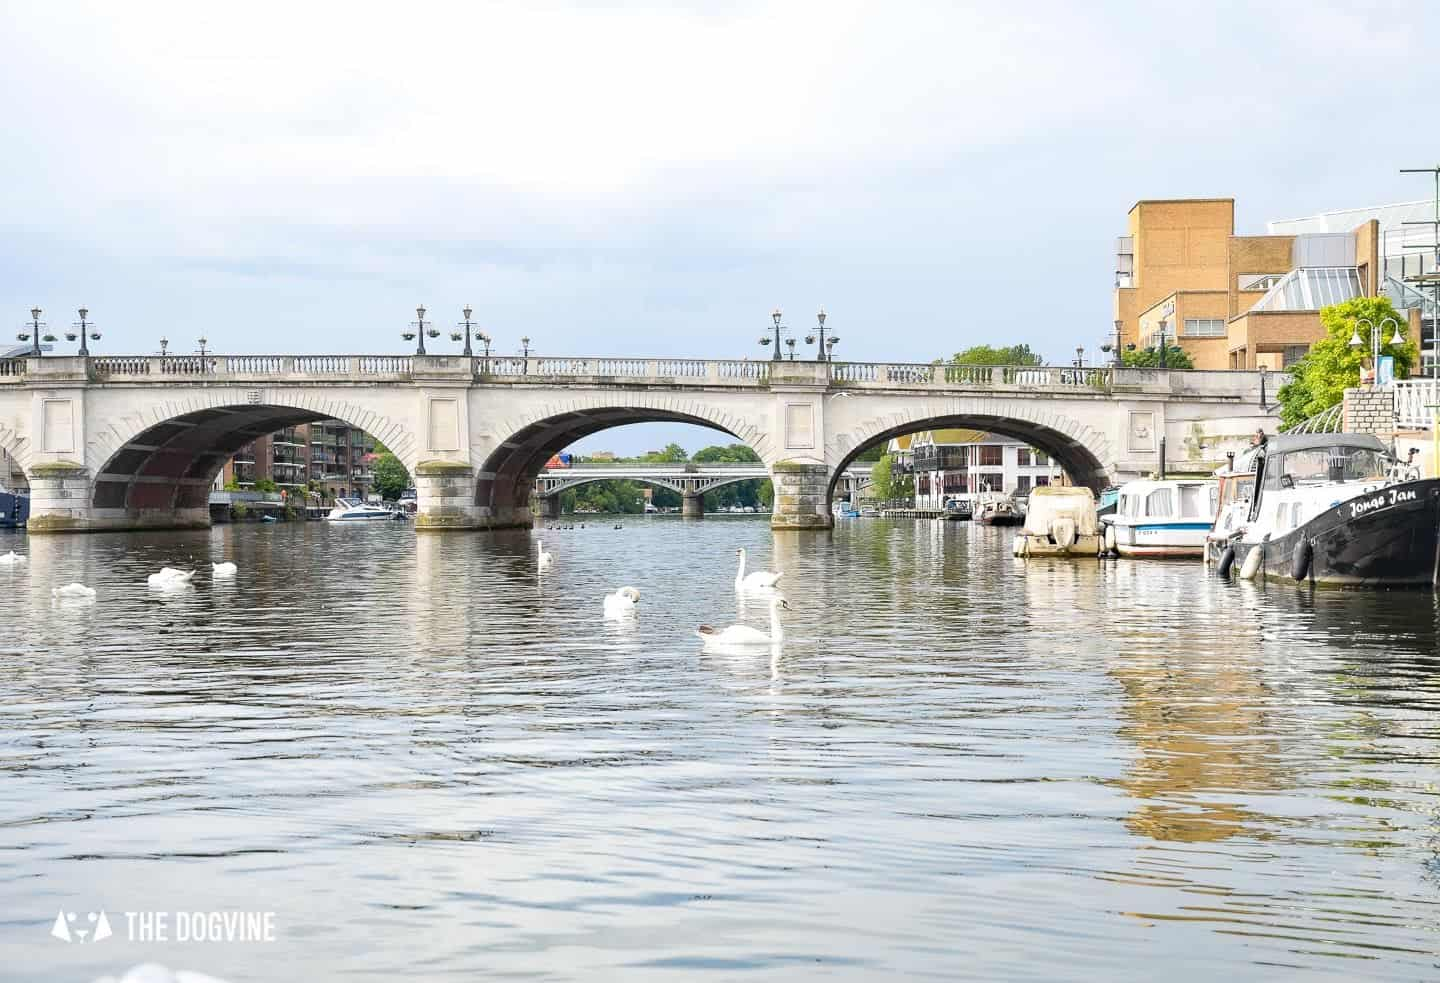 Dog-friendly Go Boat Kingston Upon Thames 25